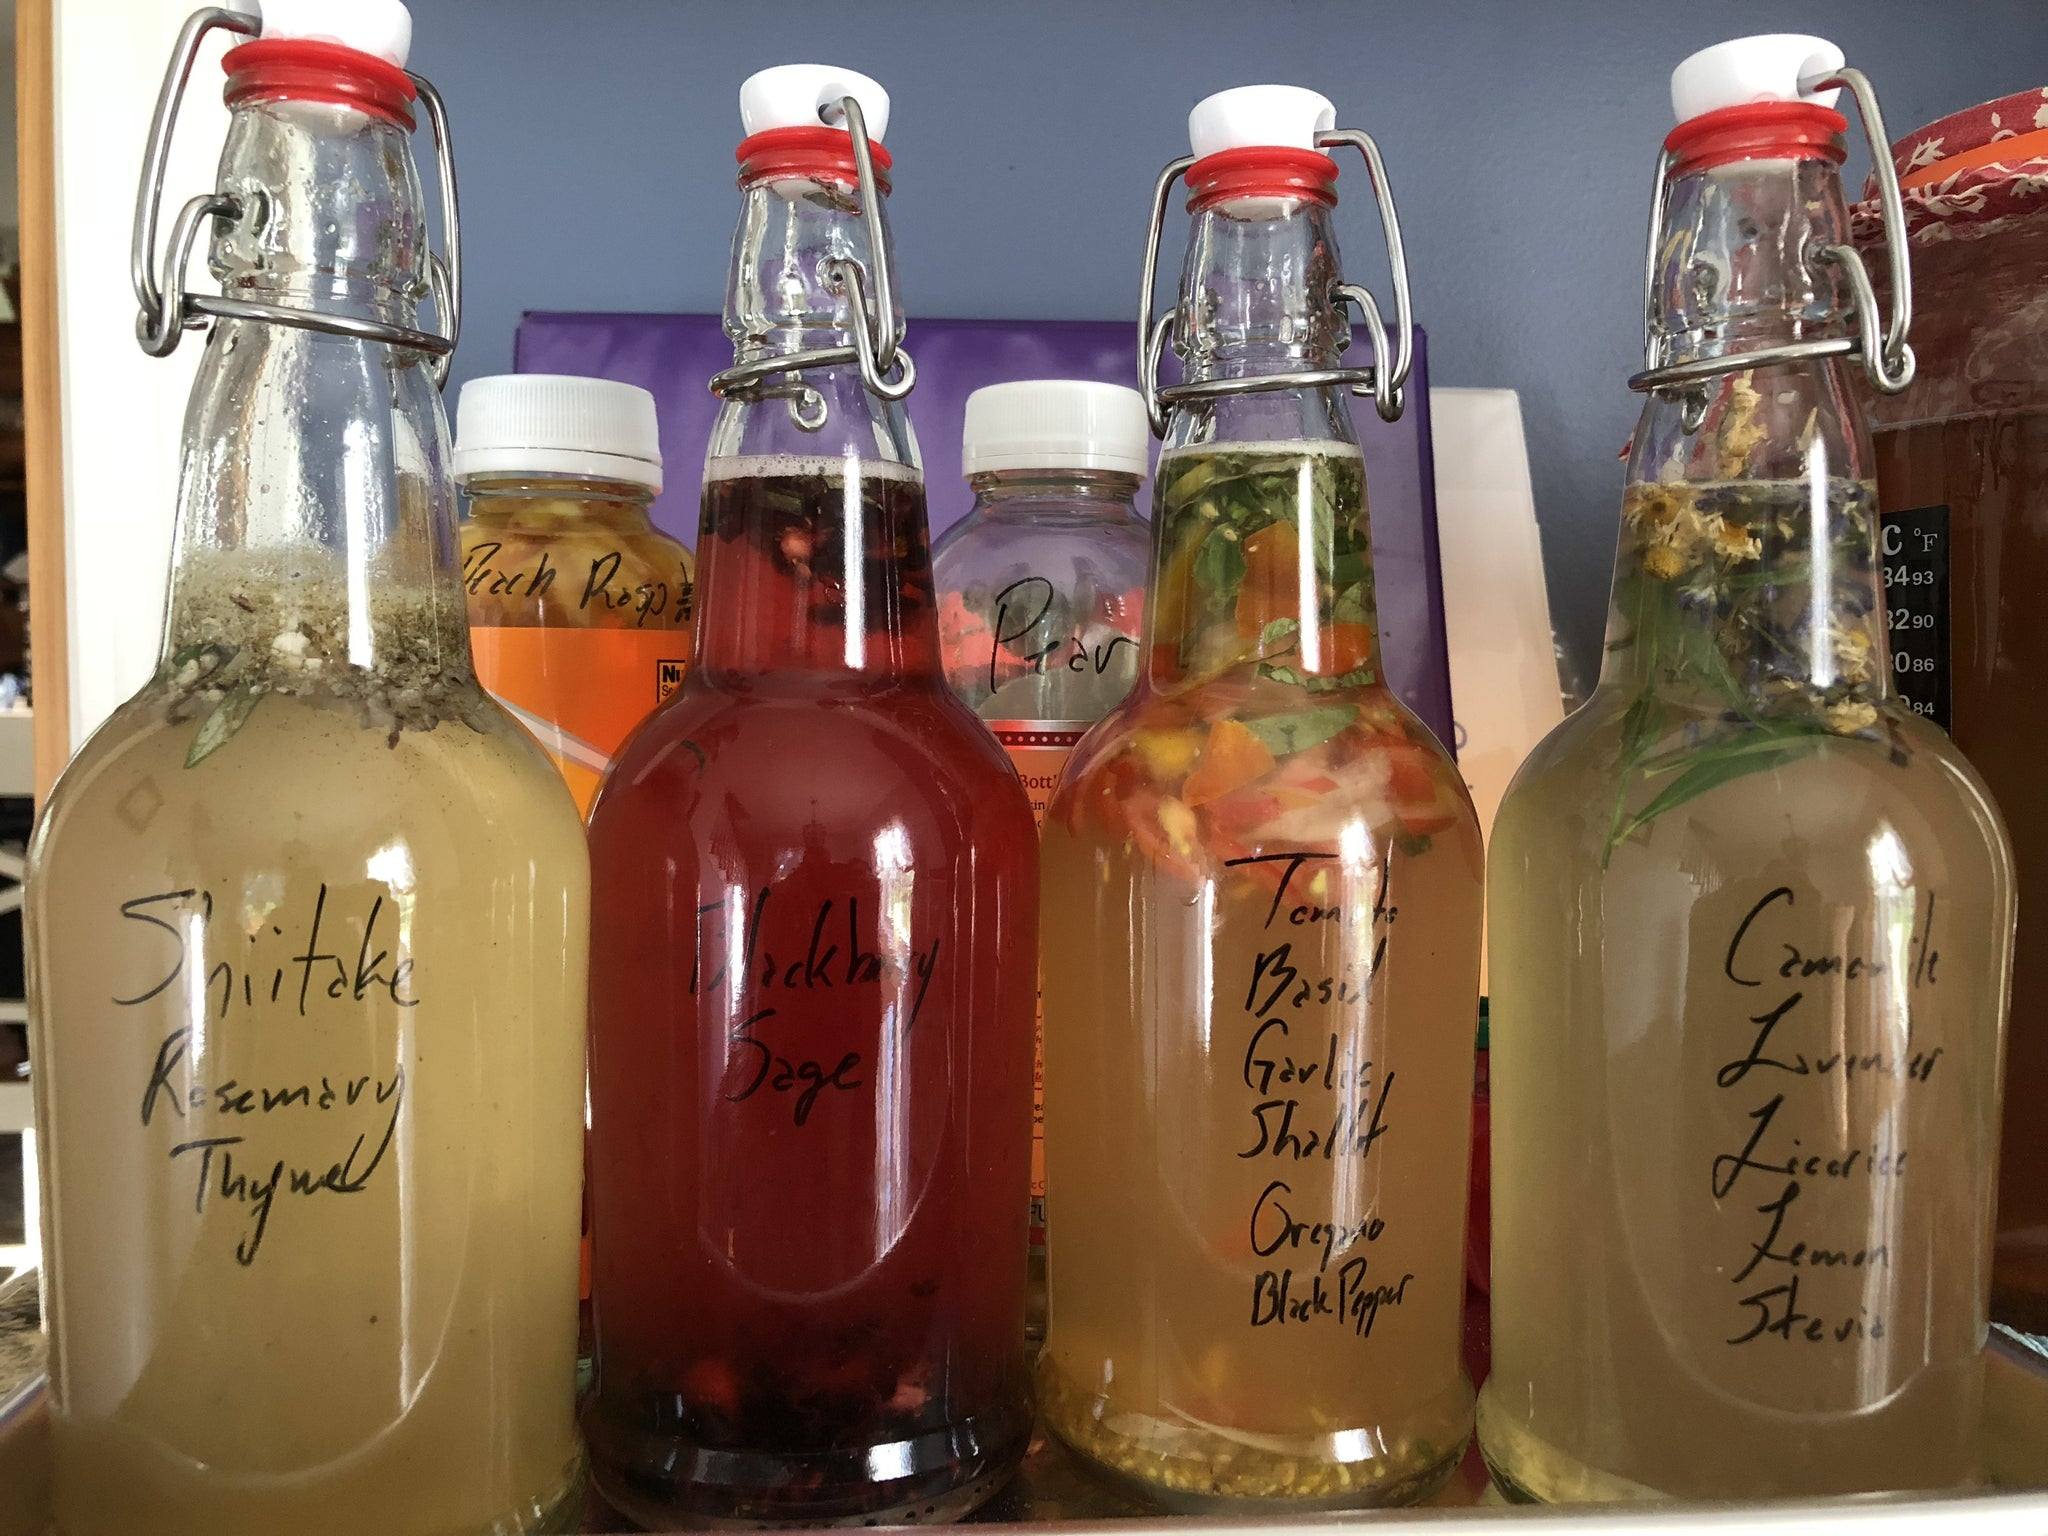 Fun Fermented Drinks - traditional sodas, kombucha, & more!